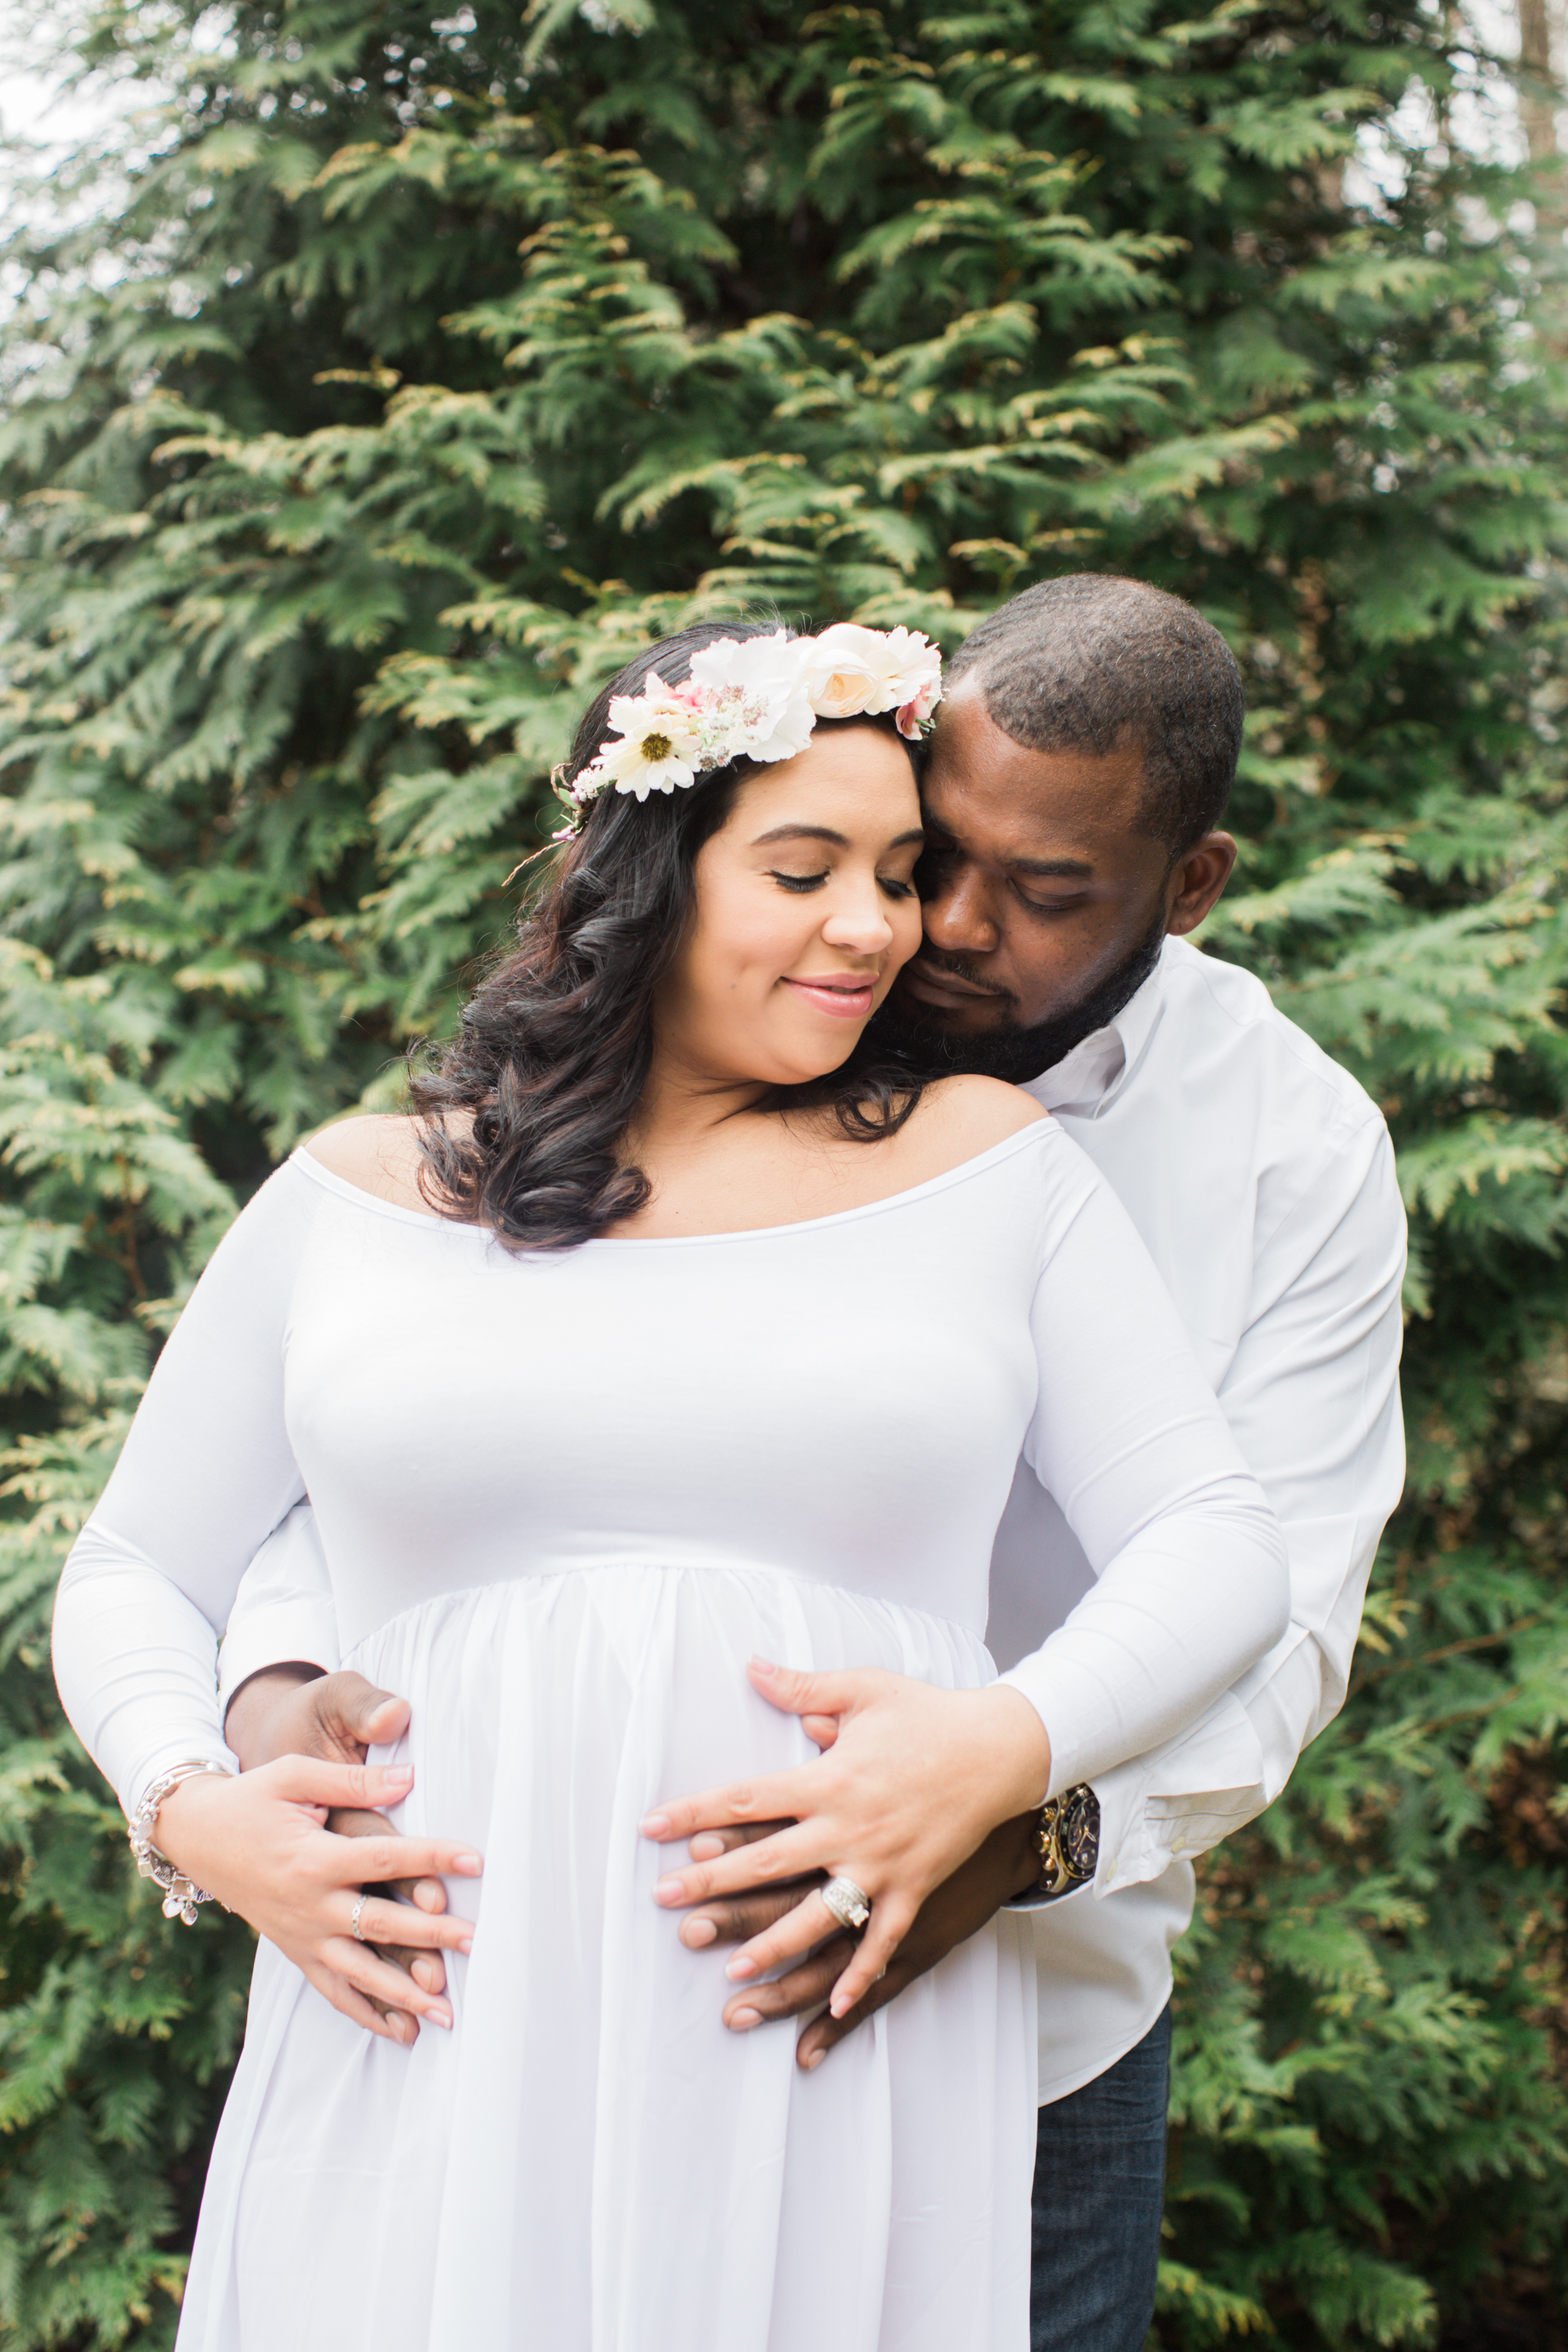 Black Family Photographers in Baltimore Maryland Maternity Photography by Megapixels Media -7.jpg